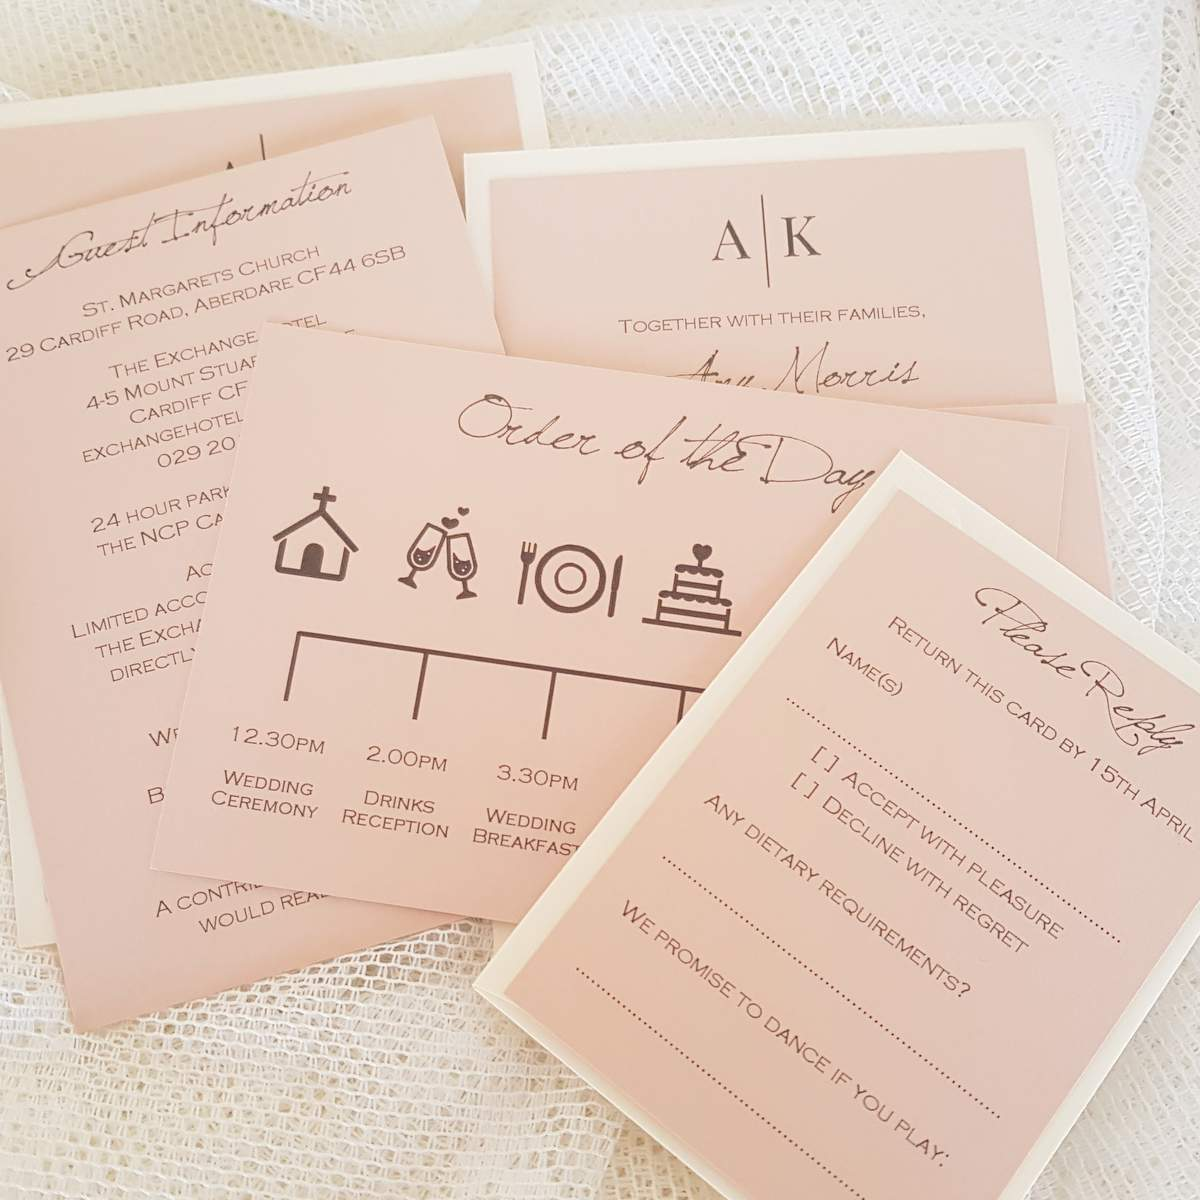 blush wedding invitation with an order of the day timeline